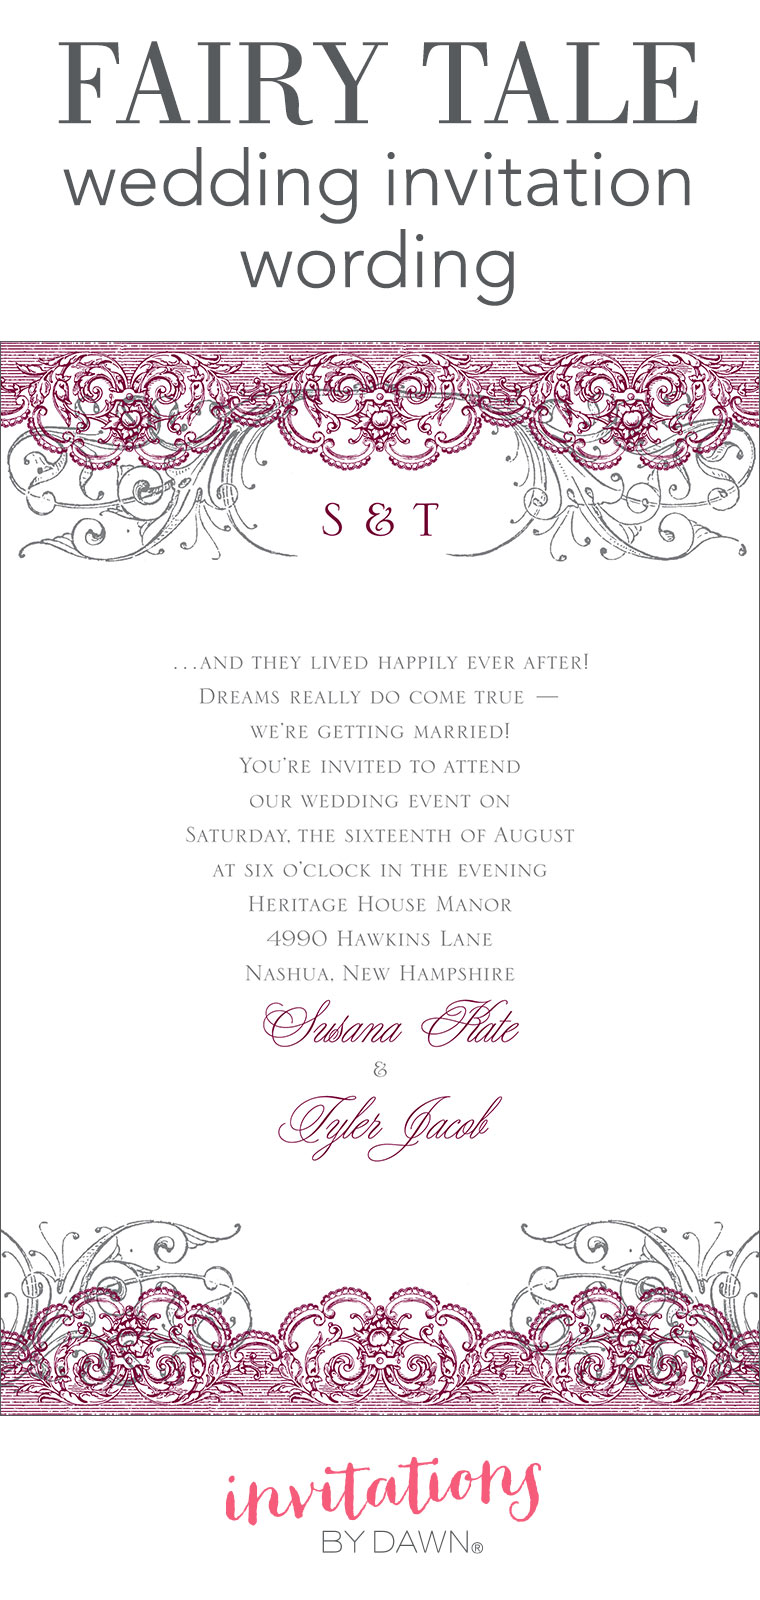 Fairy tale wedding invitation wording invitations by dawn fairy tale wedding invitation wording stopboris Images